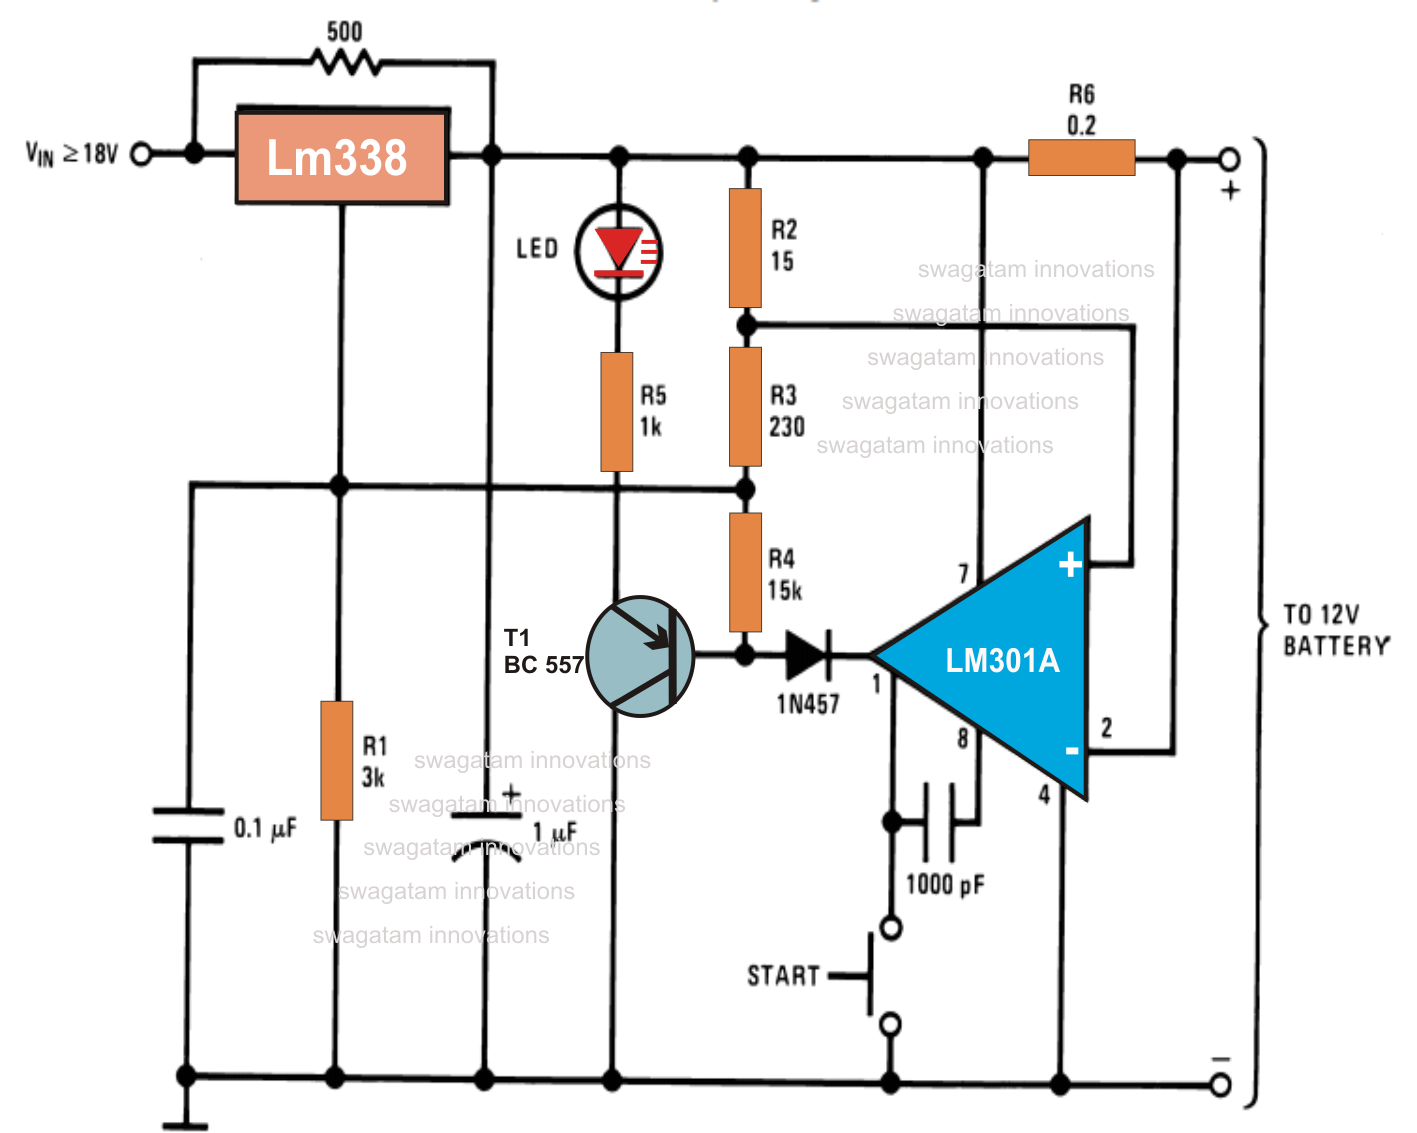 The Ic Lm338 Is An Outstanding Device Which Can Be Used For Circuit Diagram Of 6v Battery Charger Unlimited Number Potential Electronic Applications Here We Use It To Make Automatic 12v